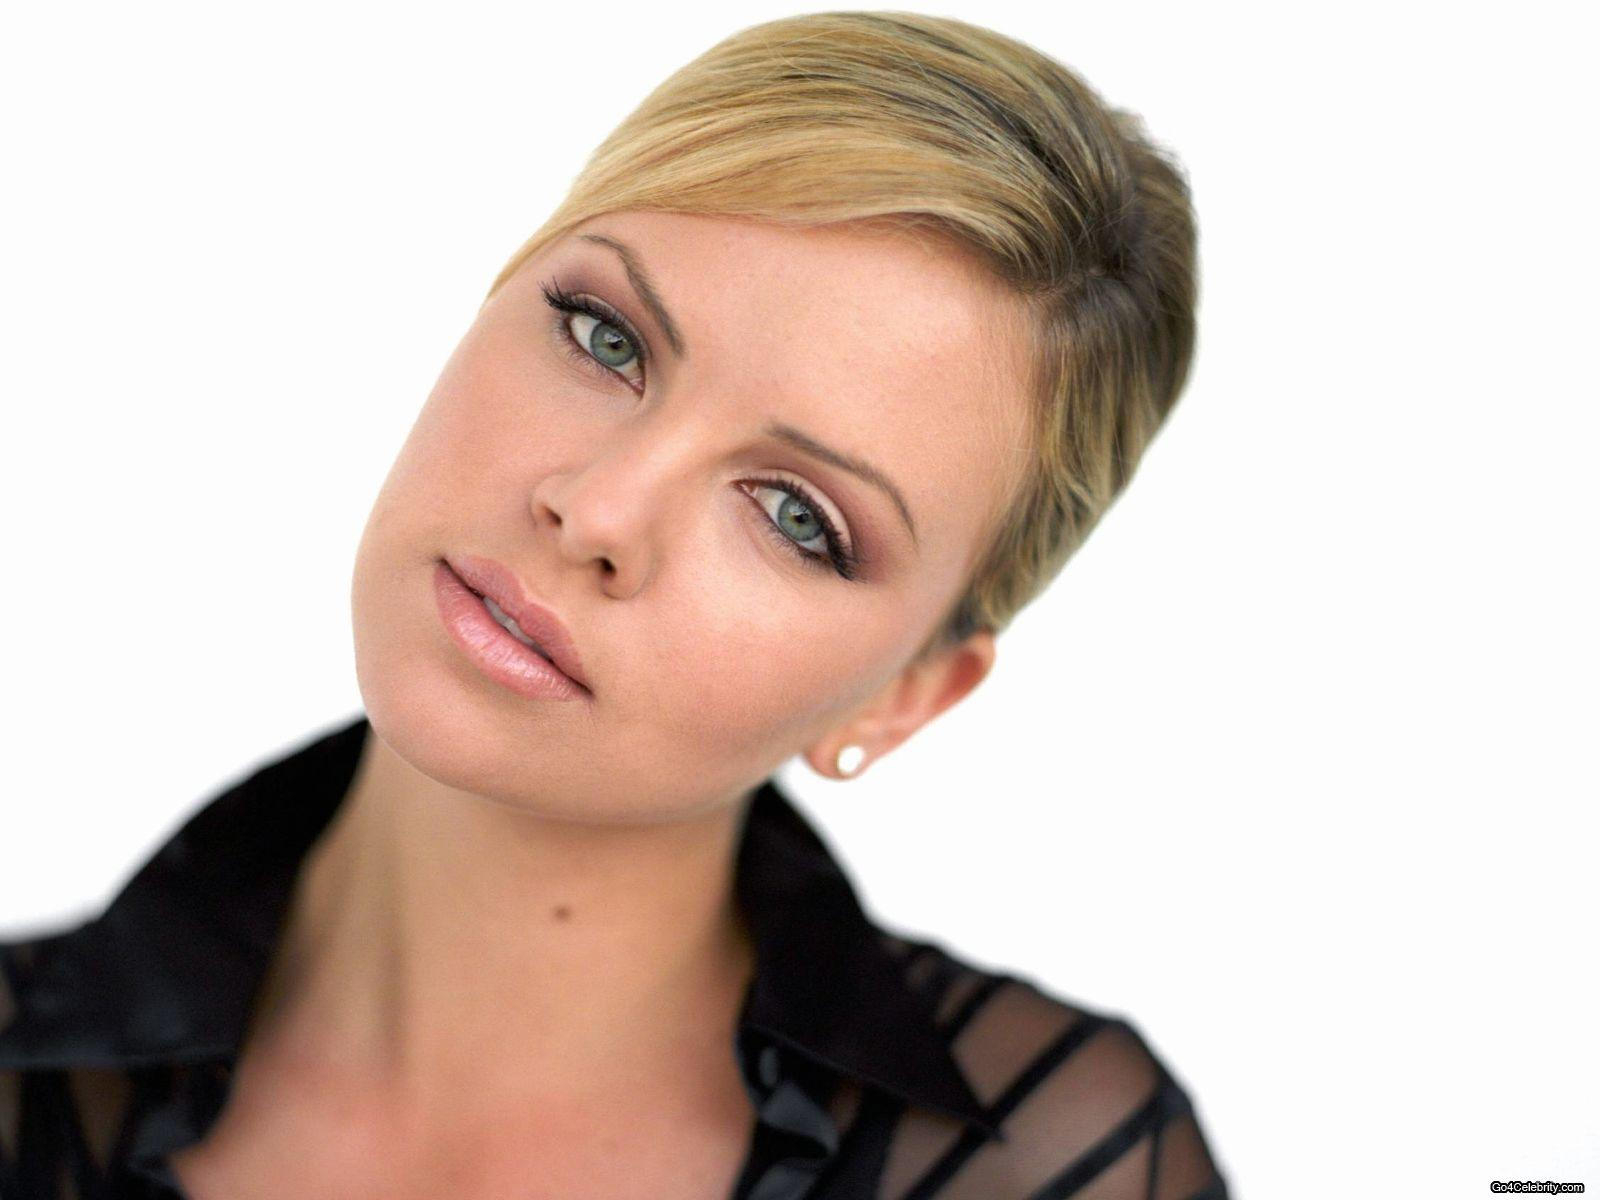 Charlize Theron - Charlize Theron Wallpaper (83488) - Fanpop Charlize Theron